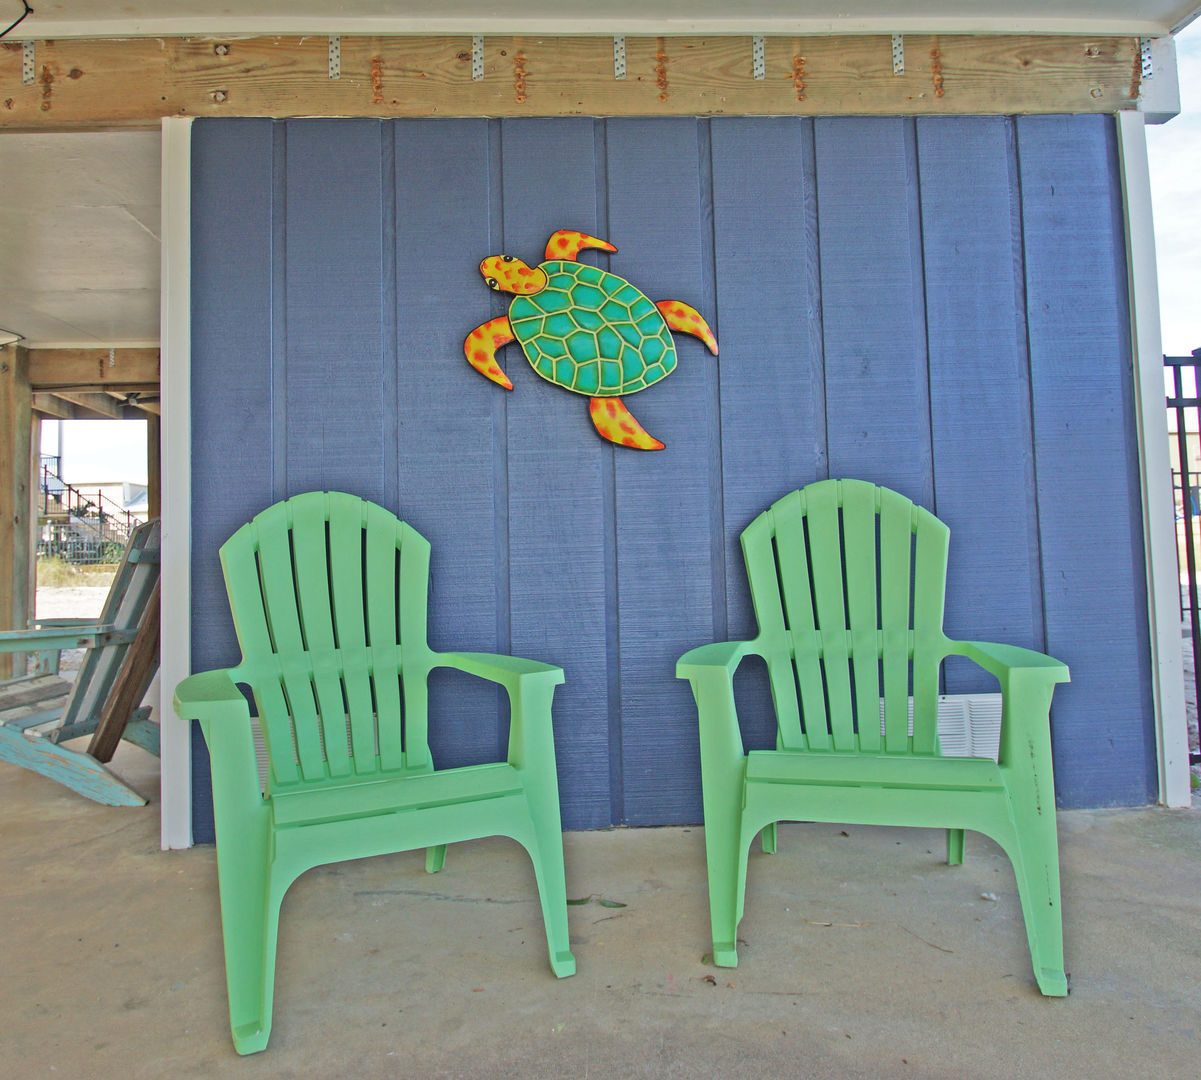 Two Outdoor Chairs in the Shaded Area Under Home.